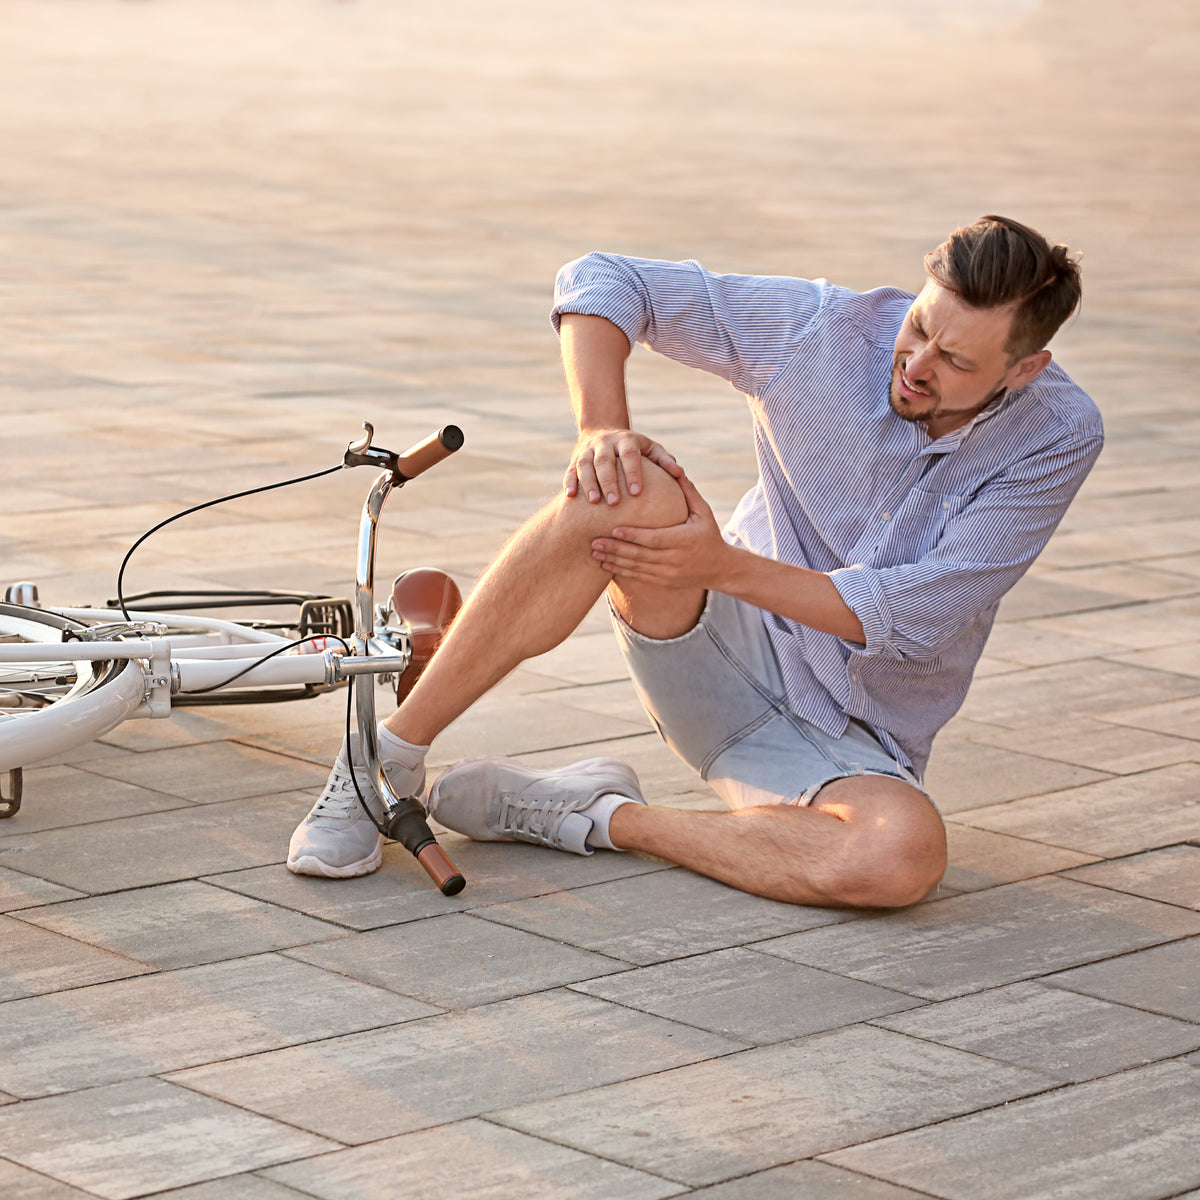 Most Common Cycling Injuries And How To Prevent Them